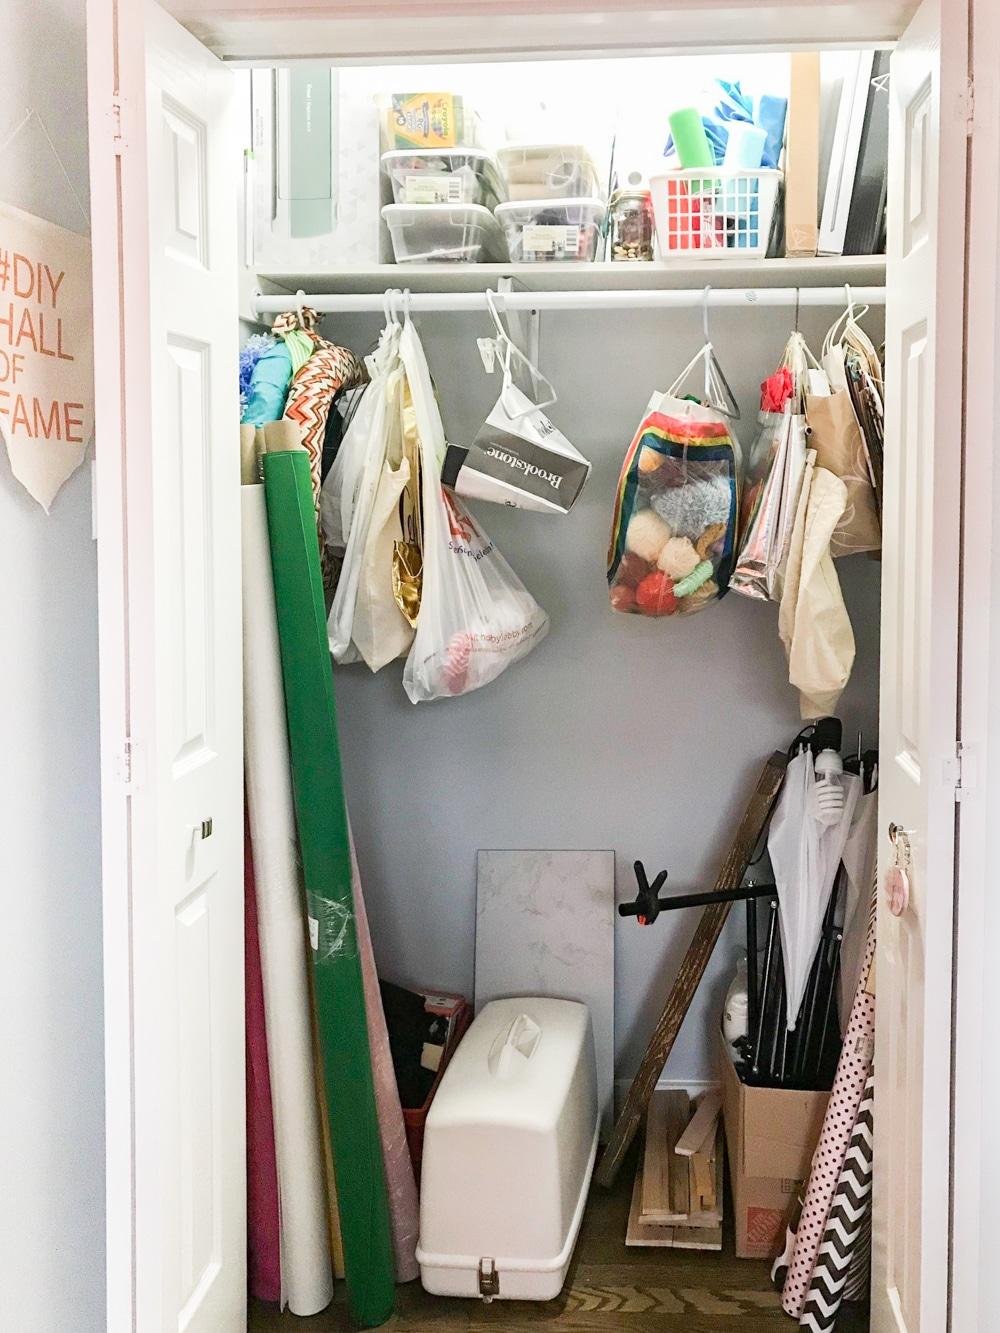 Messy craft closet before we built DIY closet shelves